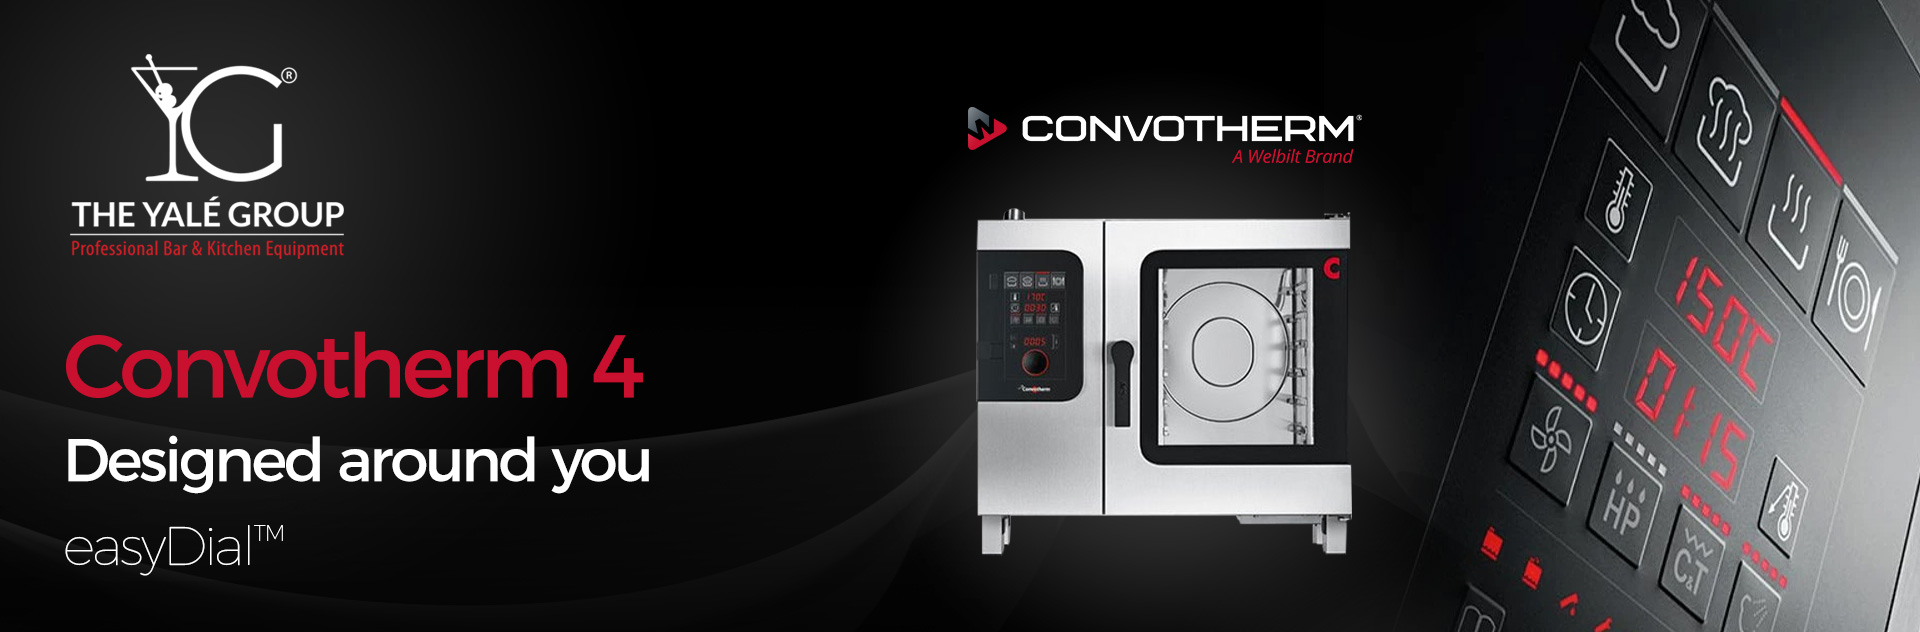 convotherm 4 easyDial